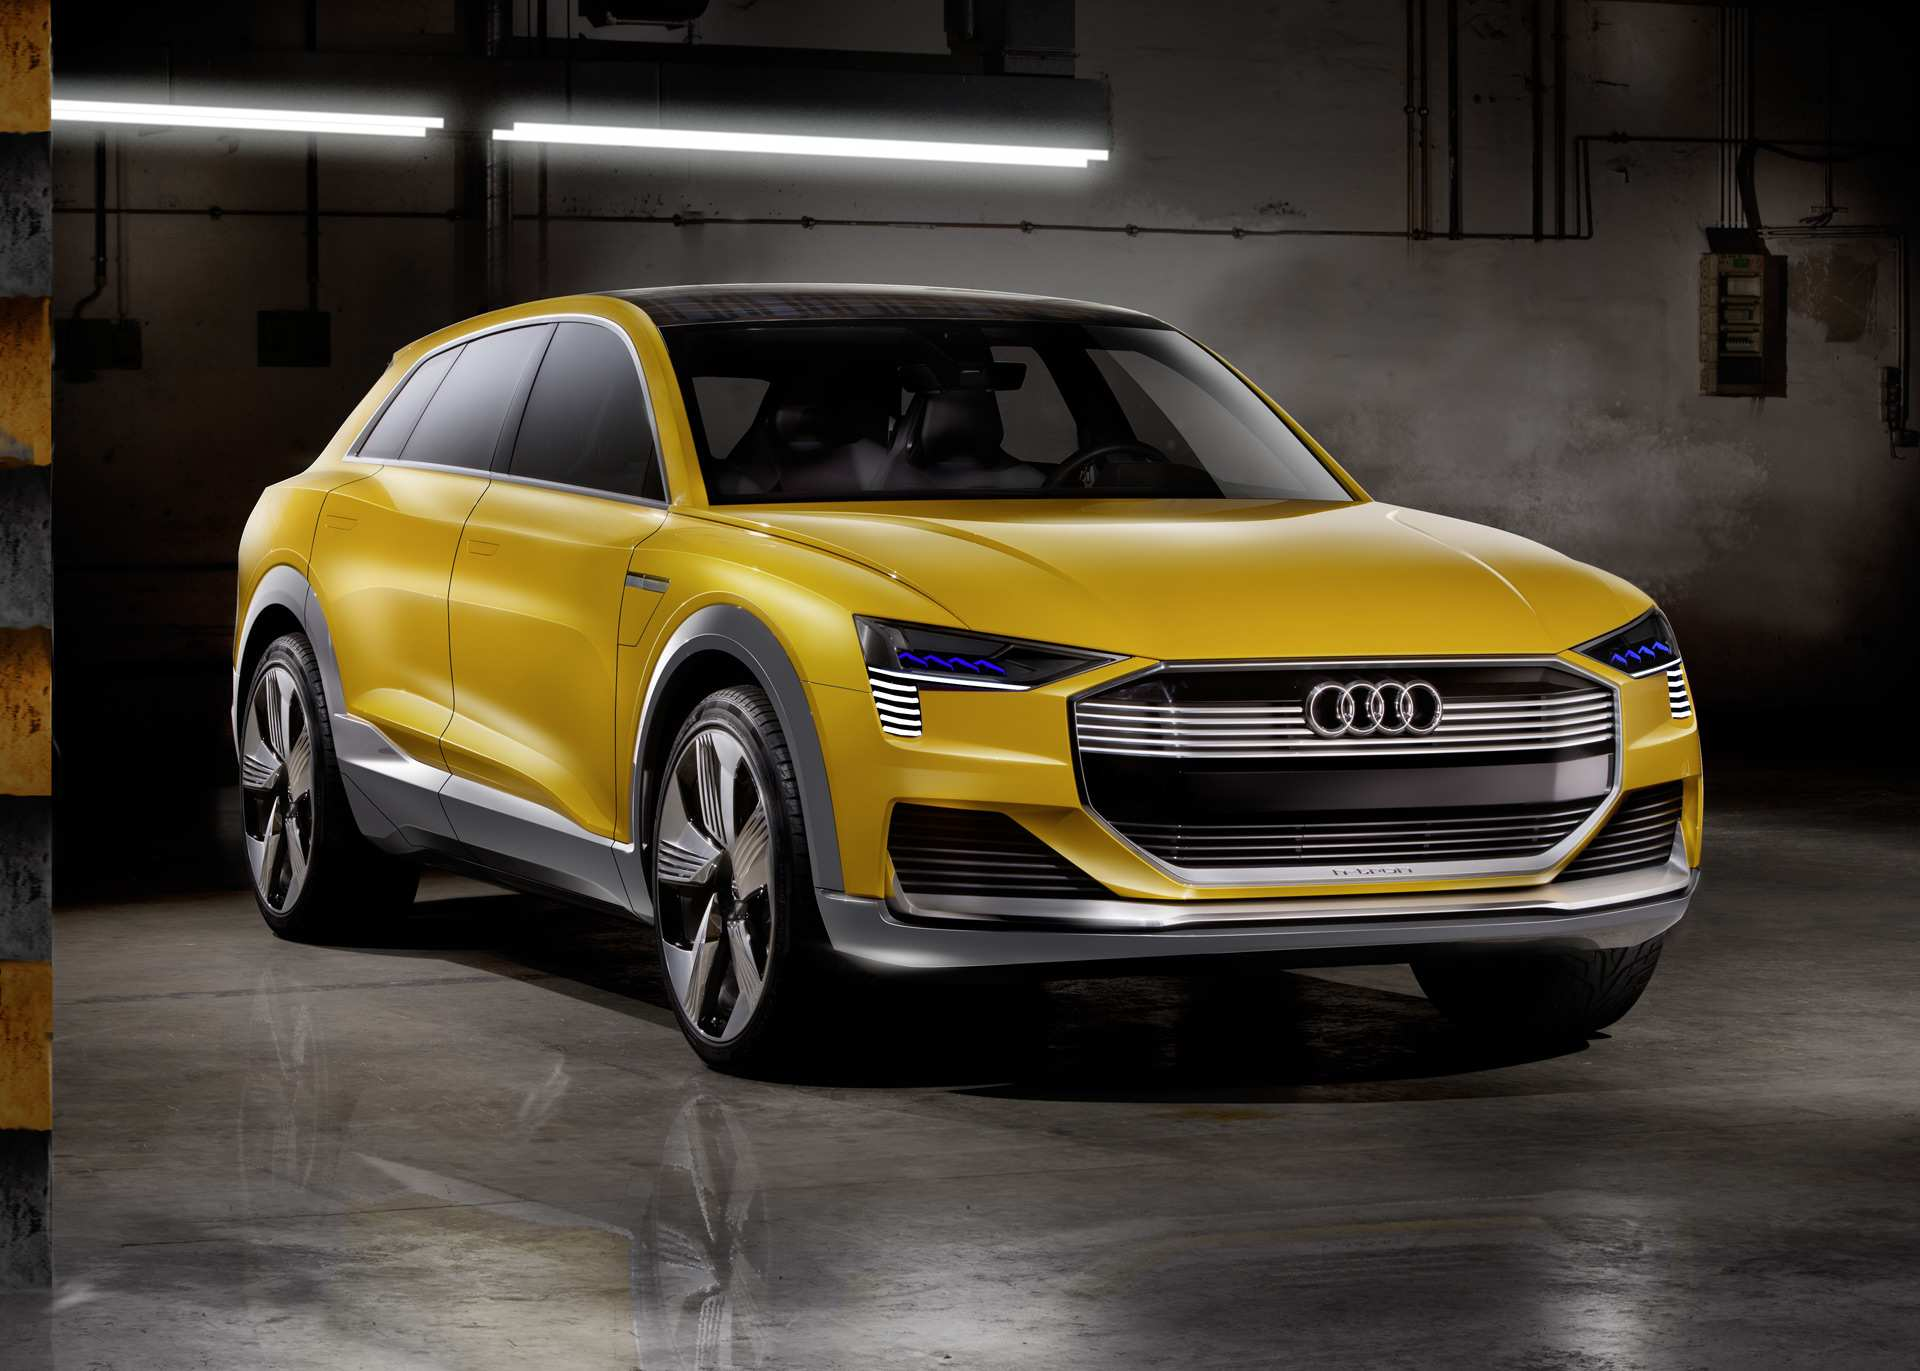 75 Concept of Audi Fuel Cell 2020 Spesification by Audi Fuel Cell 2020